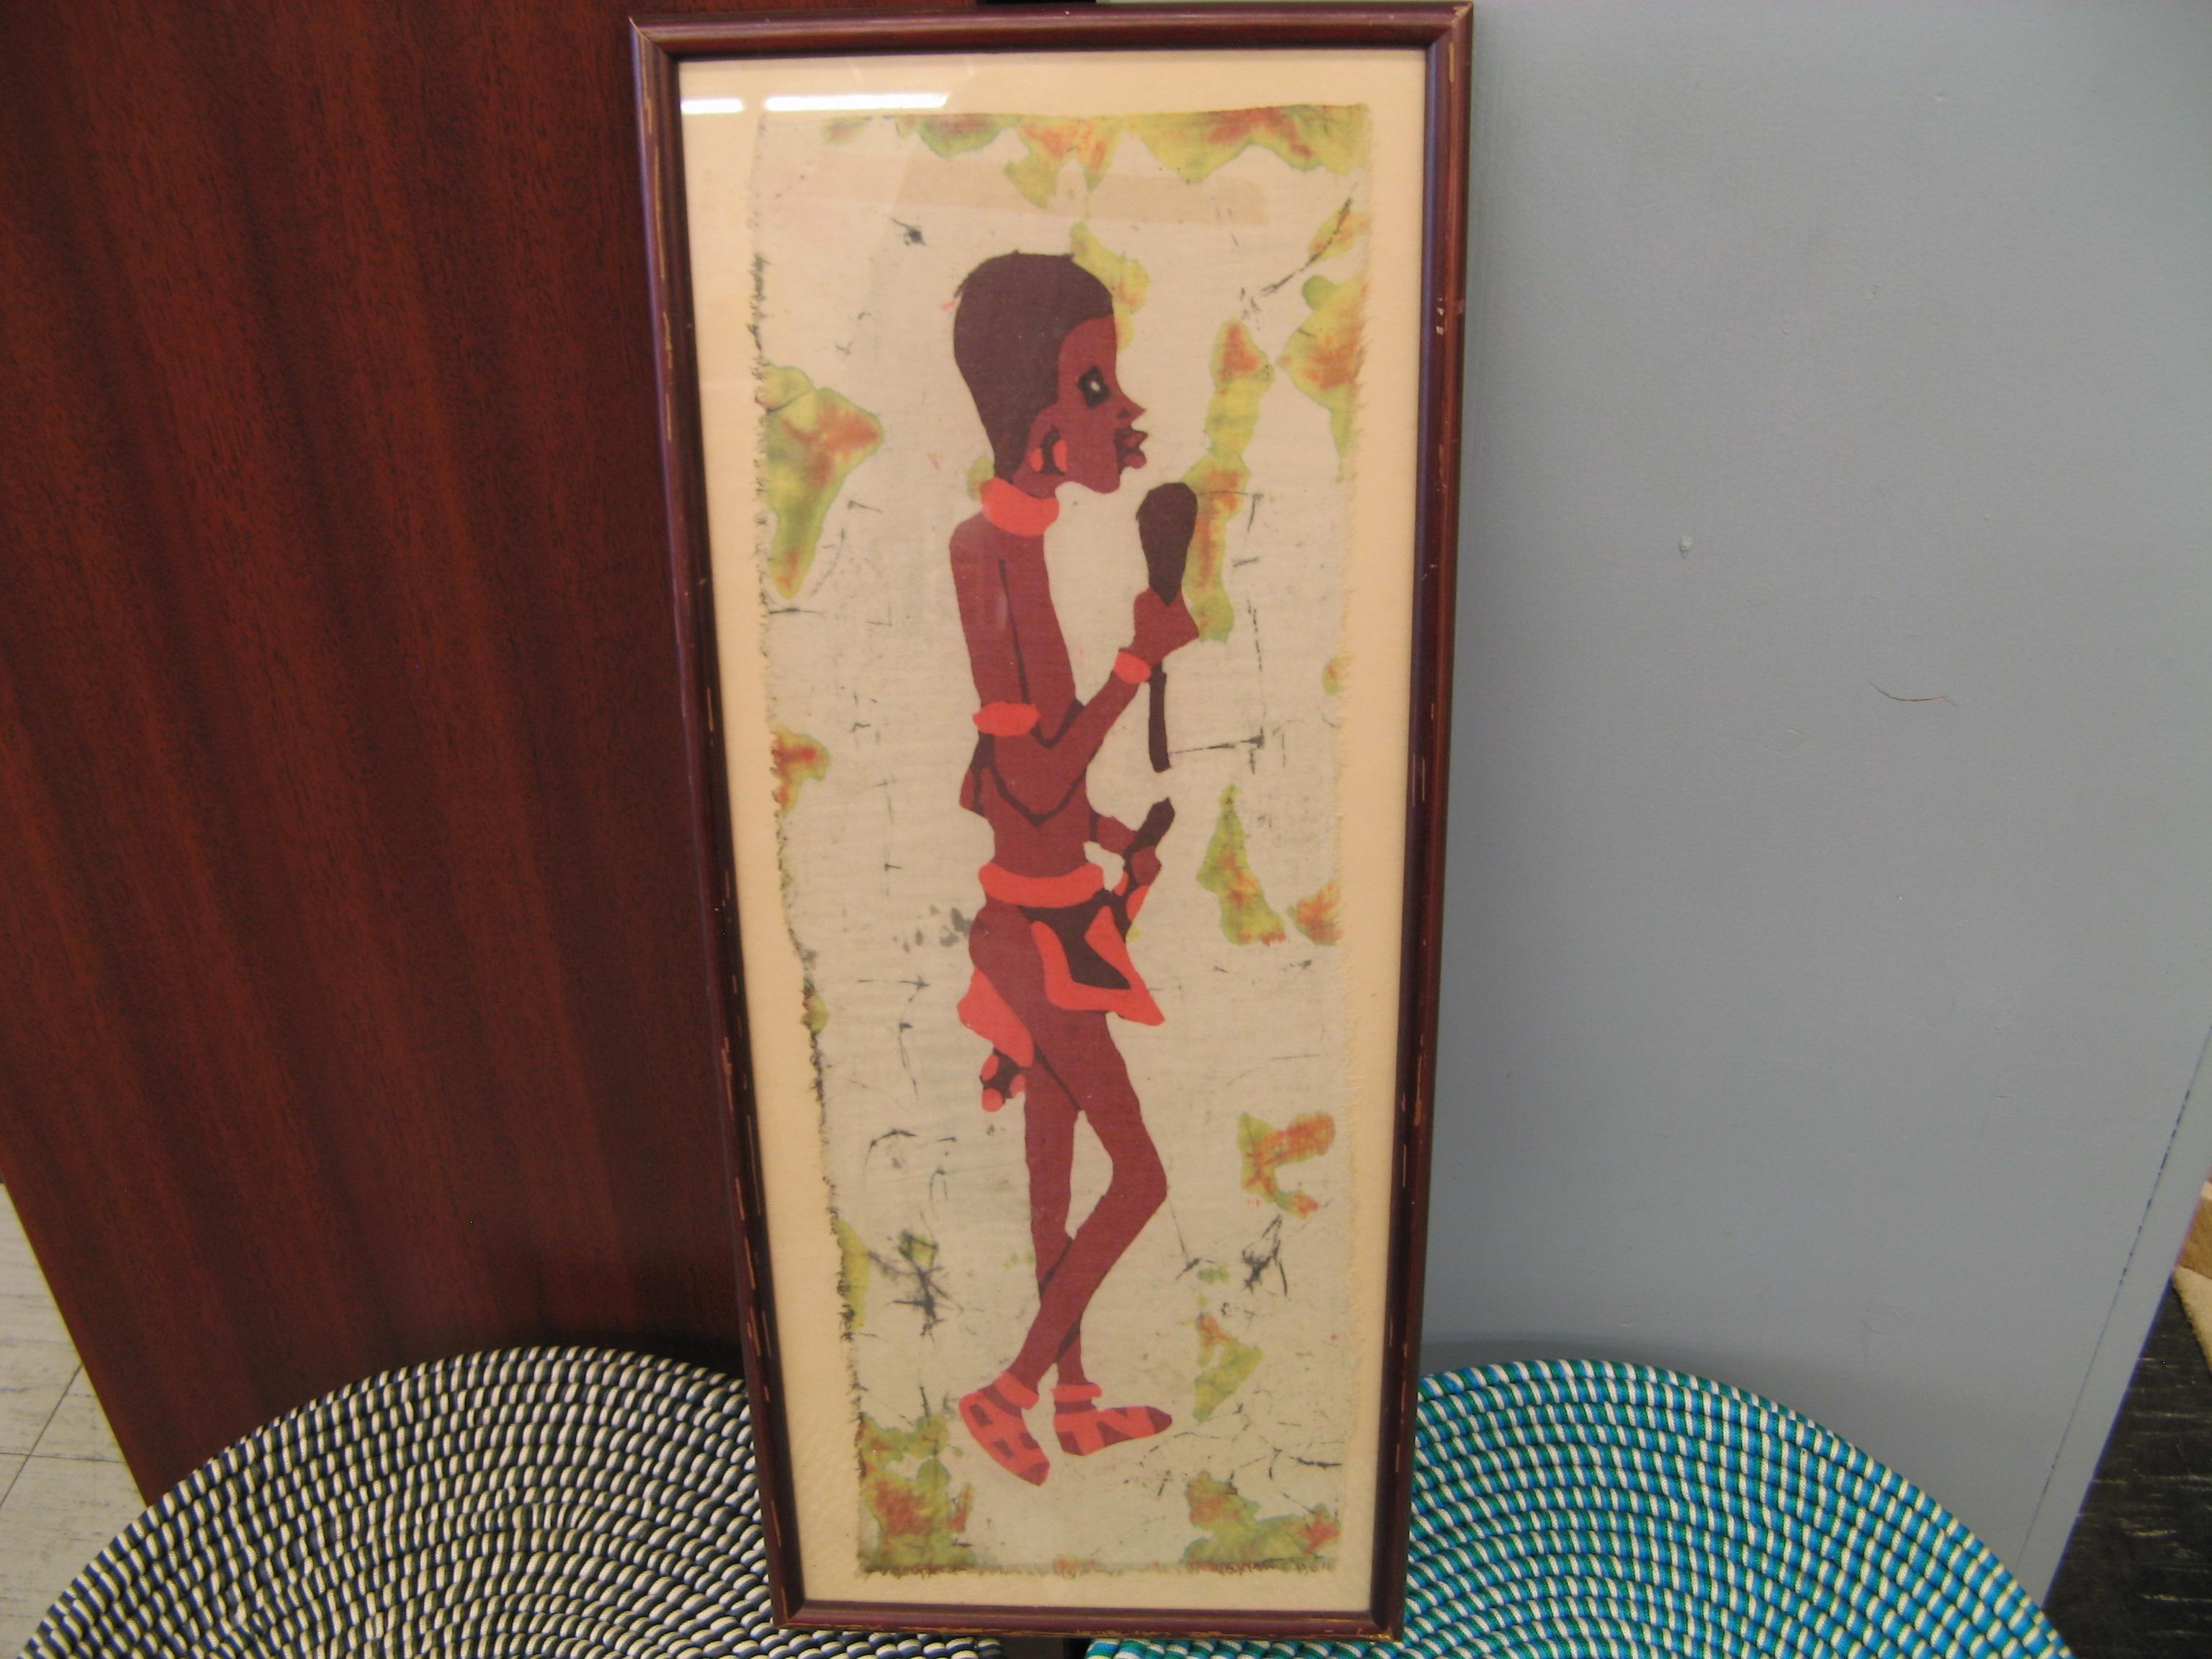 Wall Art of African Figure - Red/Orange/Brown